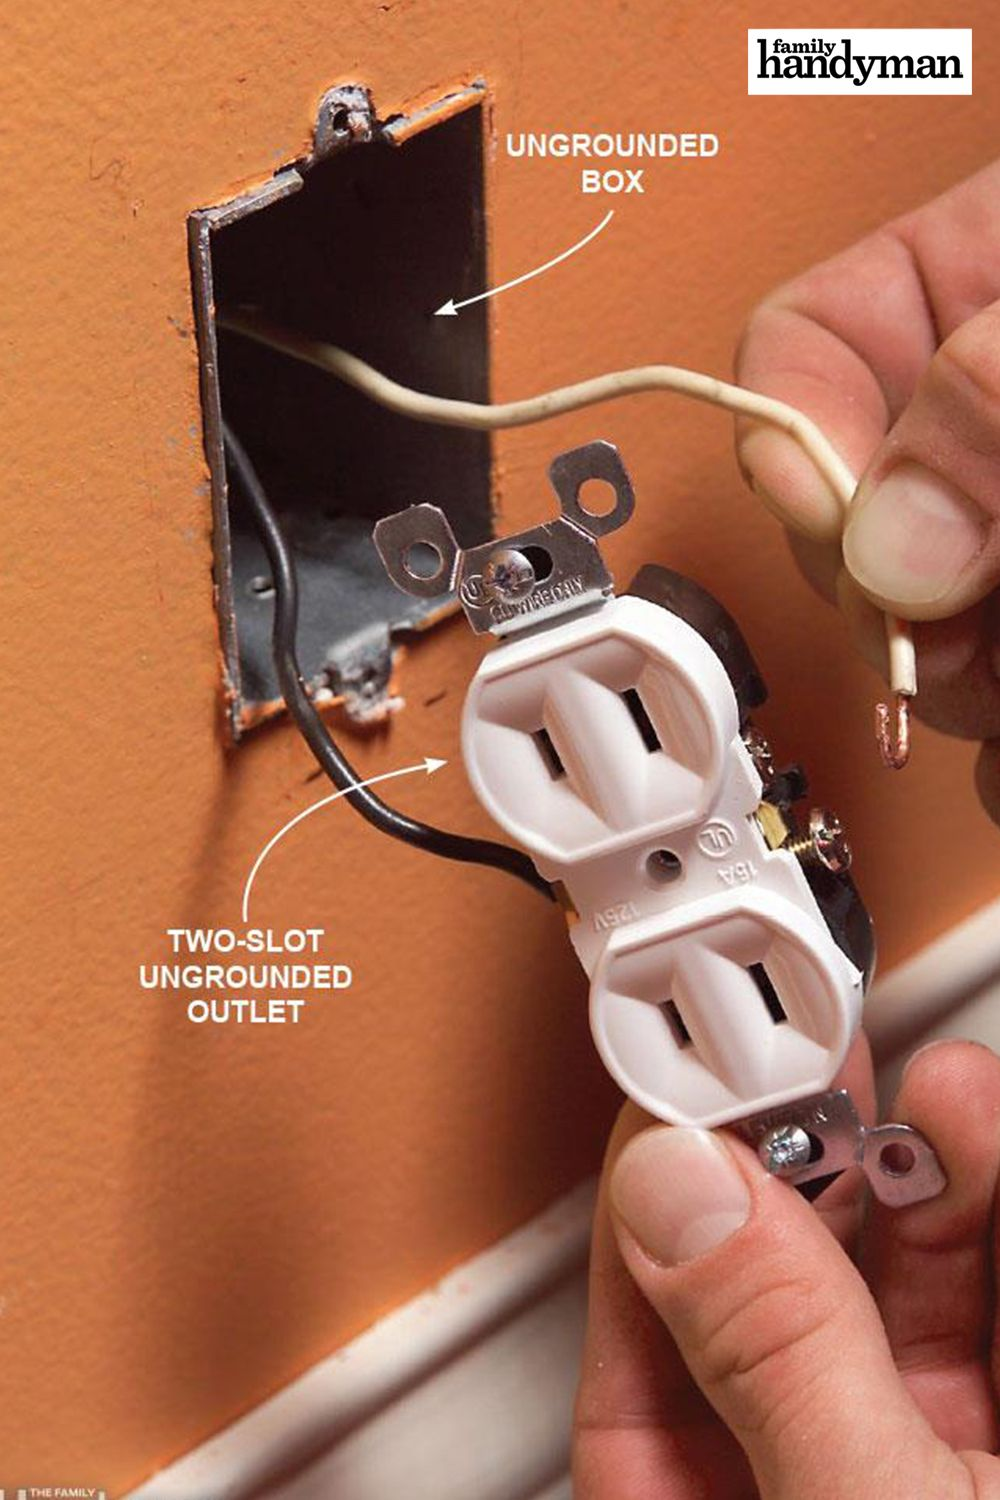 14 Things Your Electrician Wants You to Know